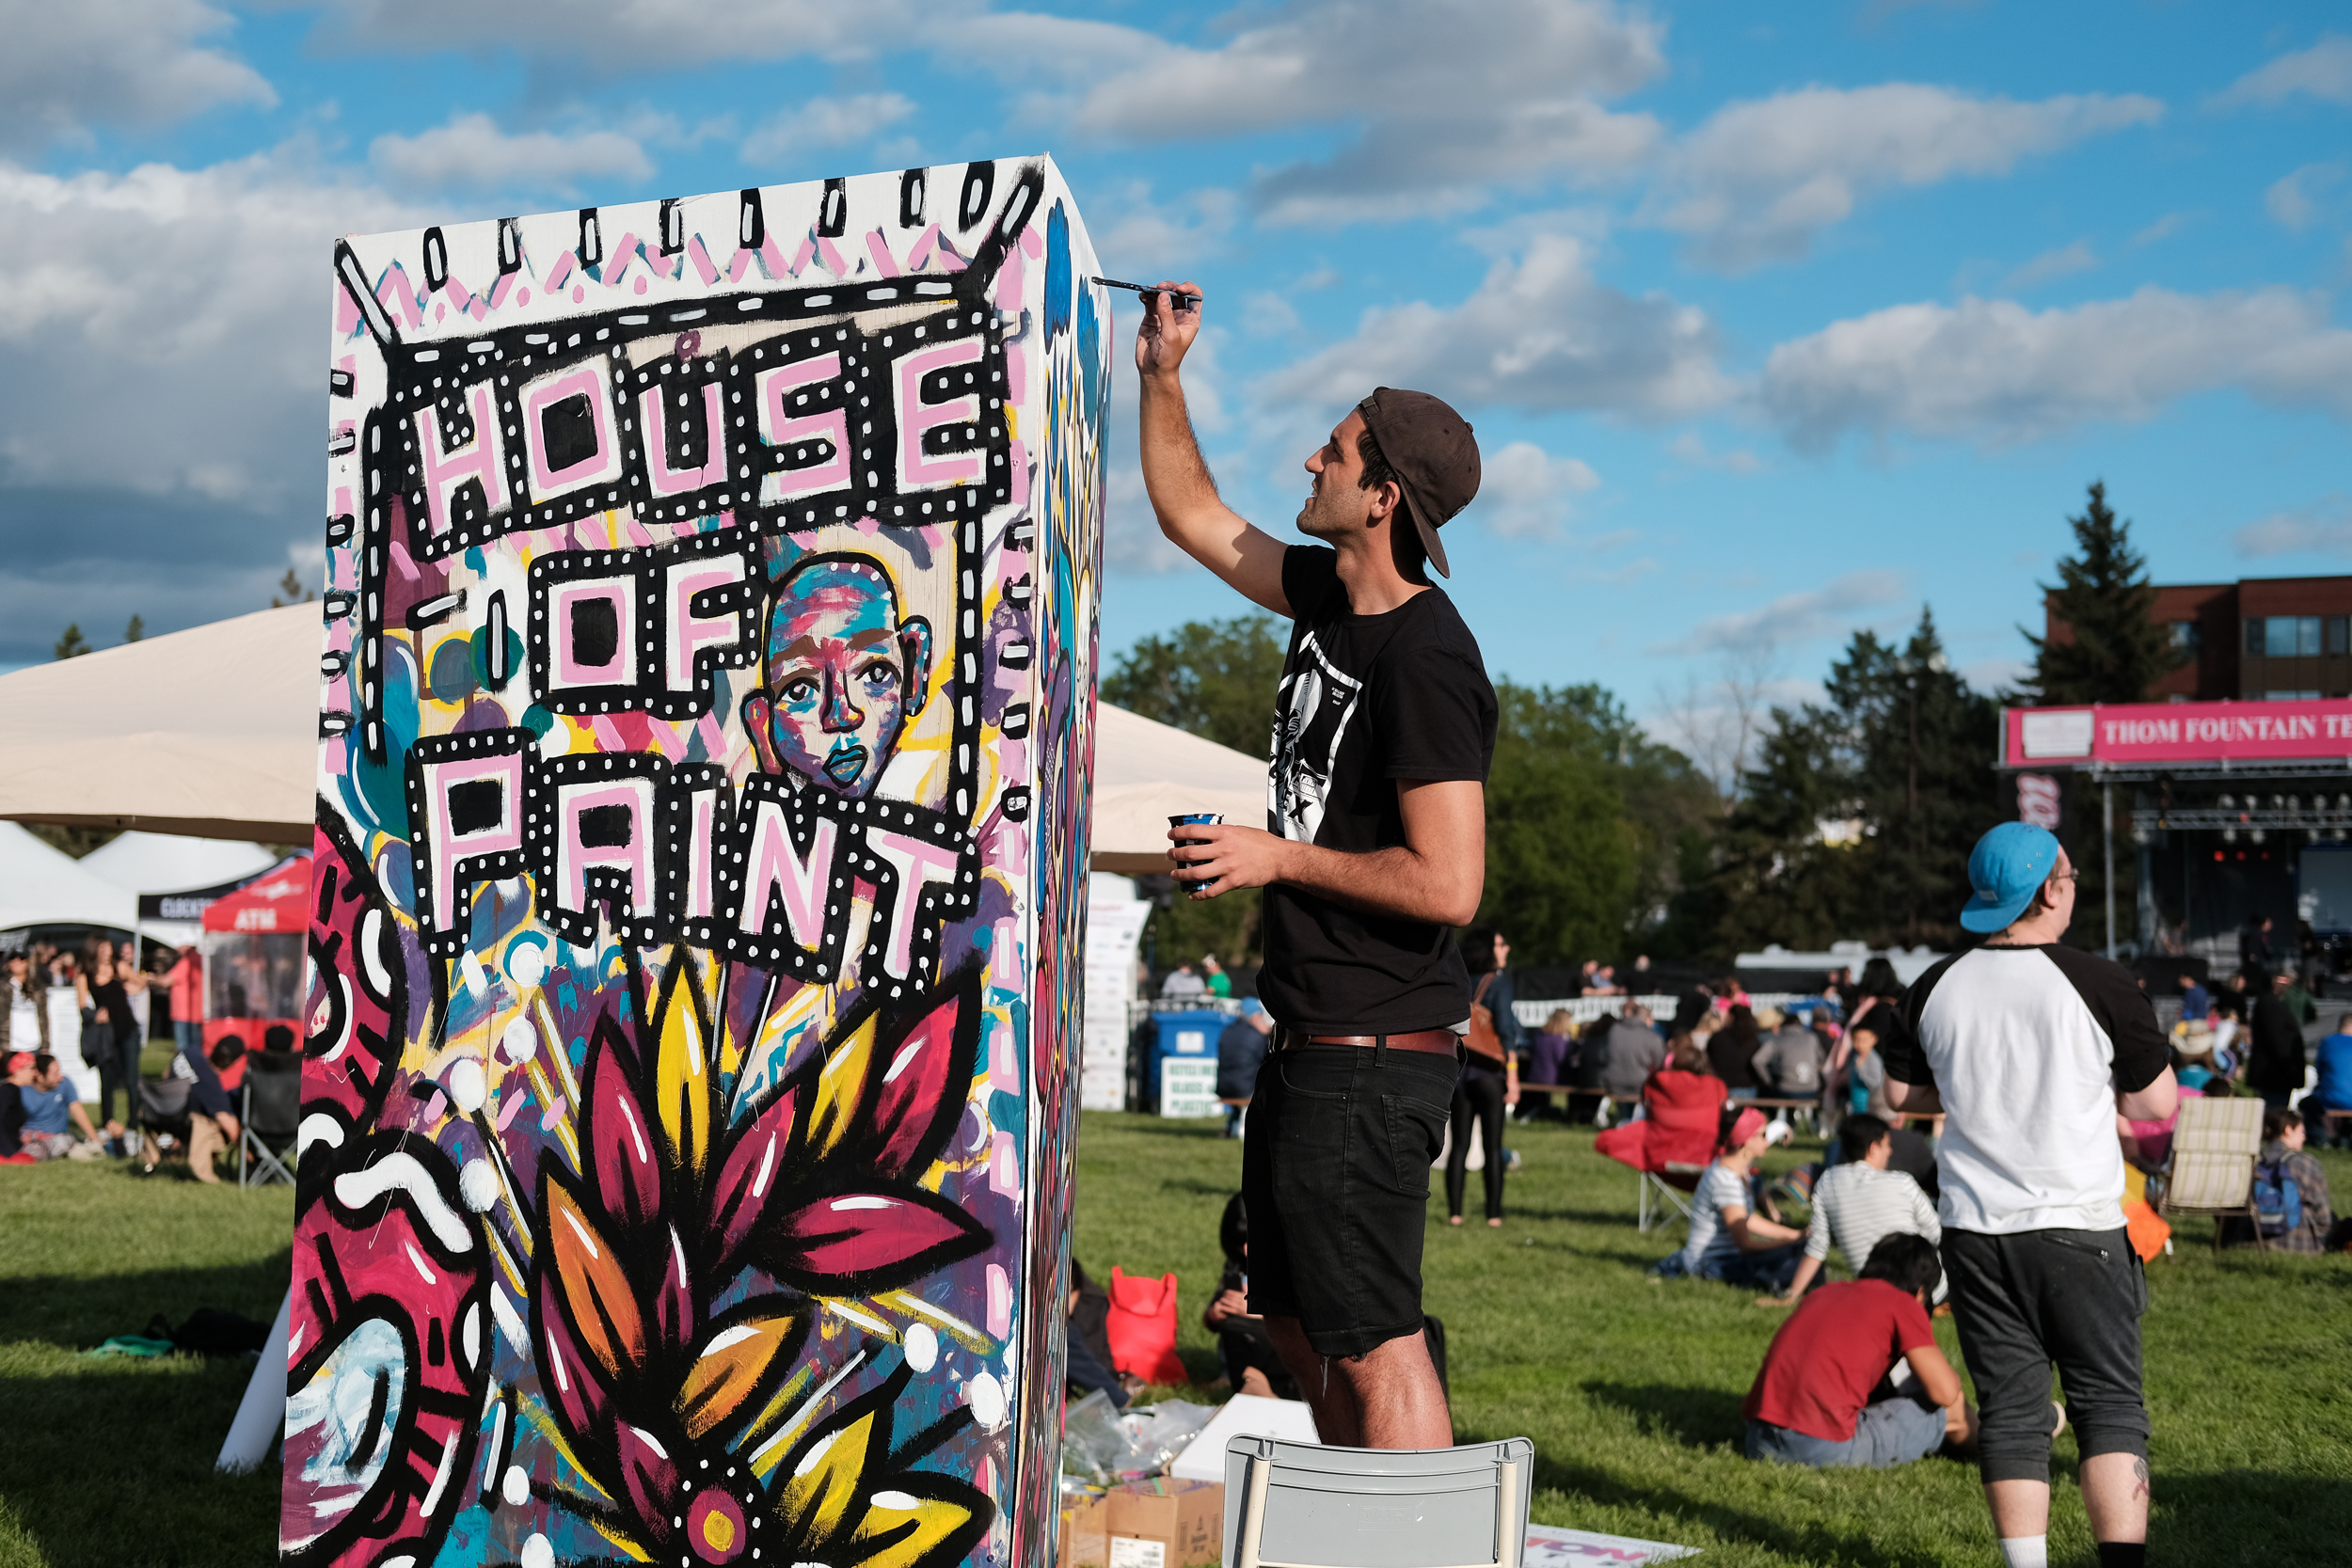 House of Paint's live mural art takes shape Saturday evening